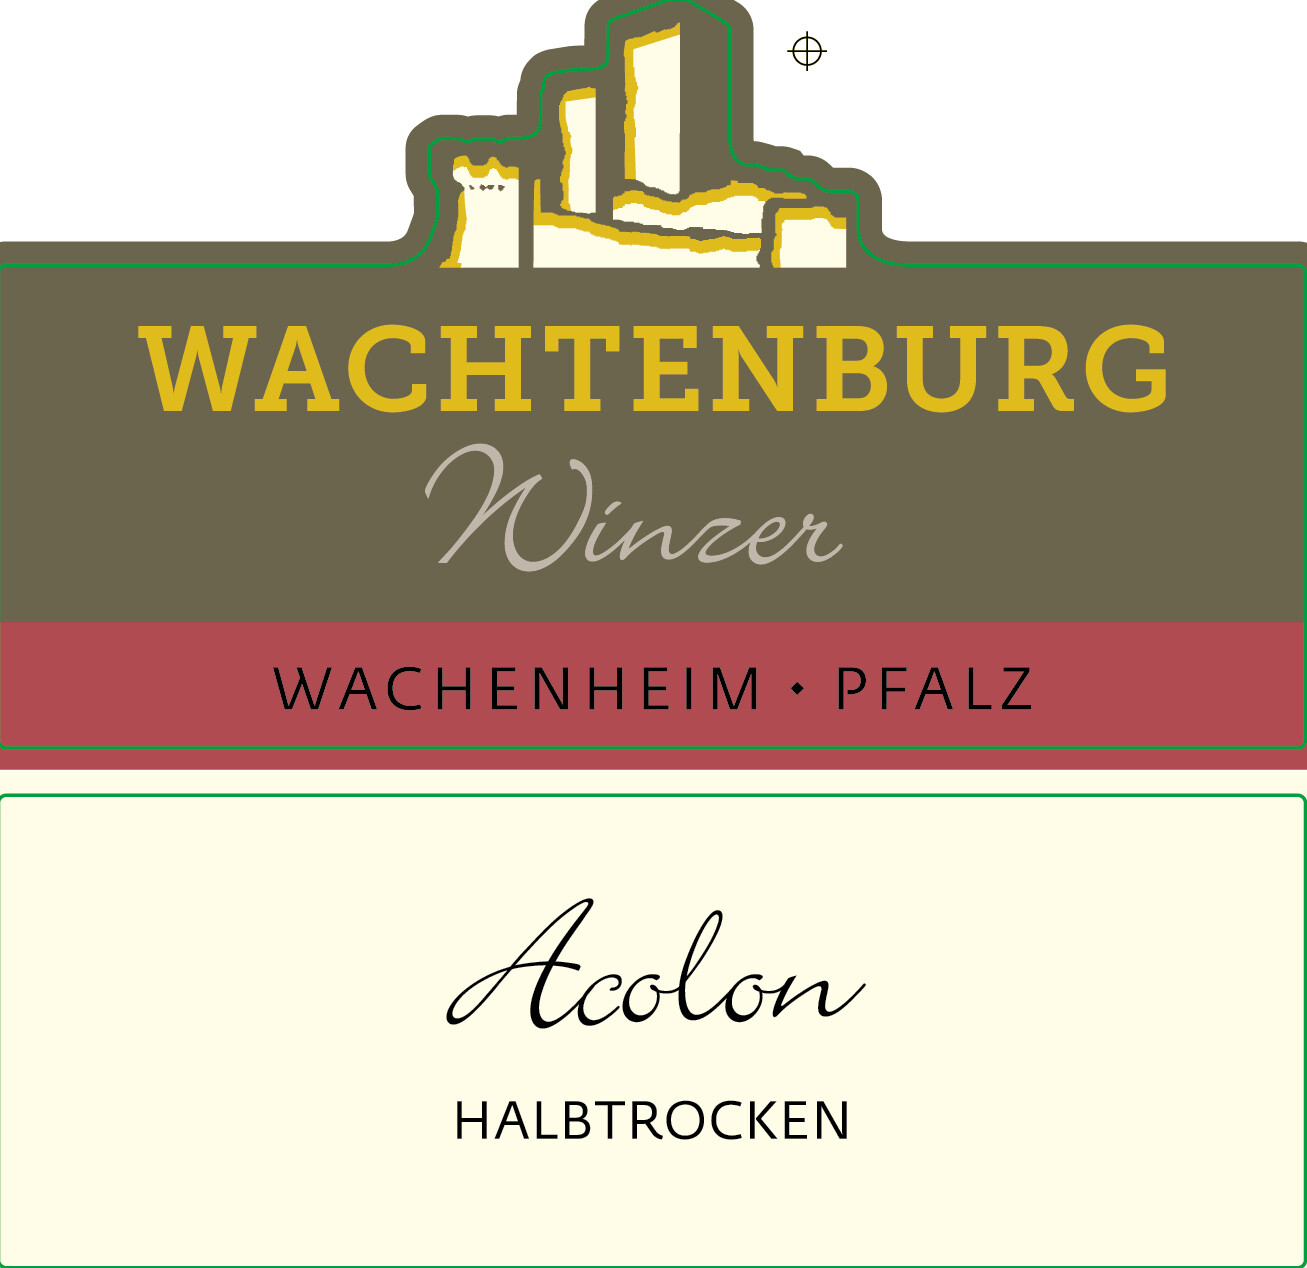 Acolon from Wachtenburg Winzer Winery in Germany- 750 ml bottle